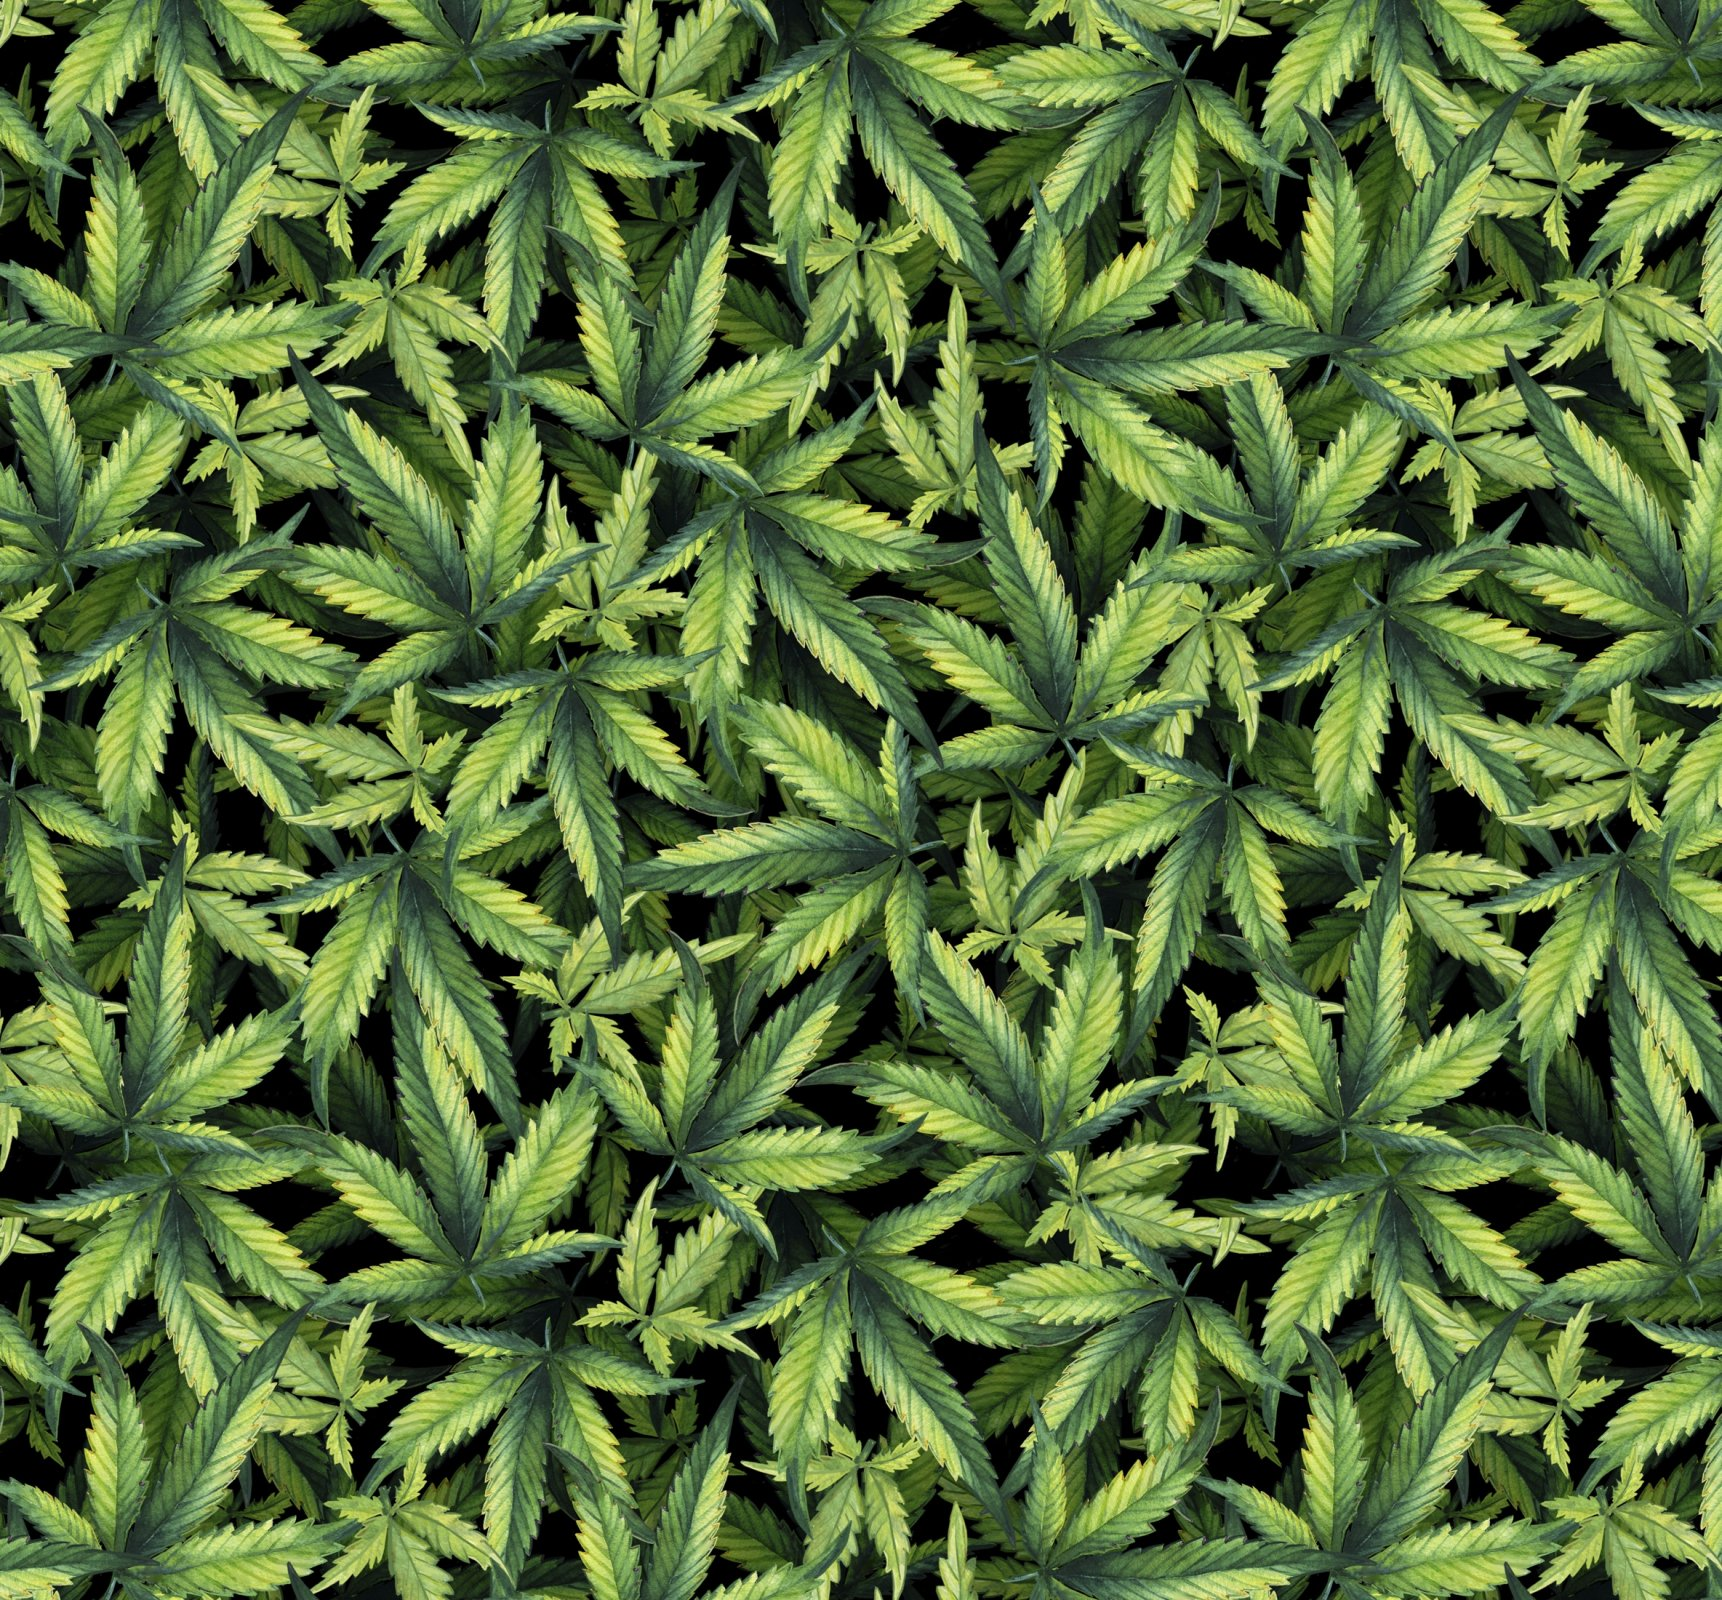 DT-Exclusive Digital Prints DX-1324-0C-1 Black/Multi - Marijuana Plant Packed